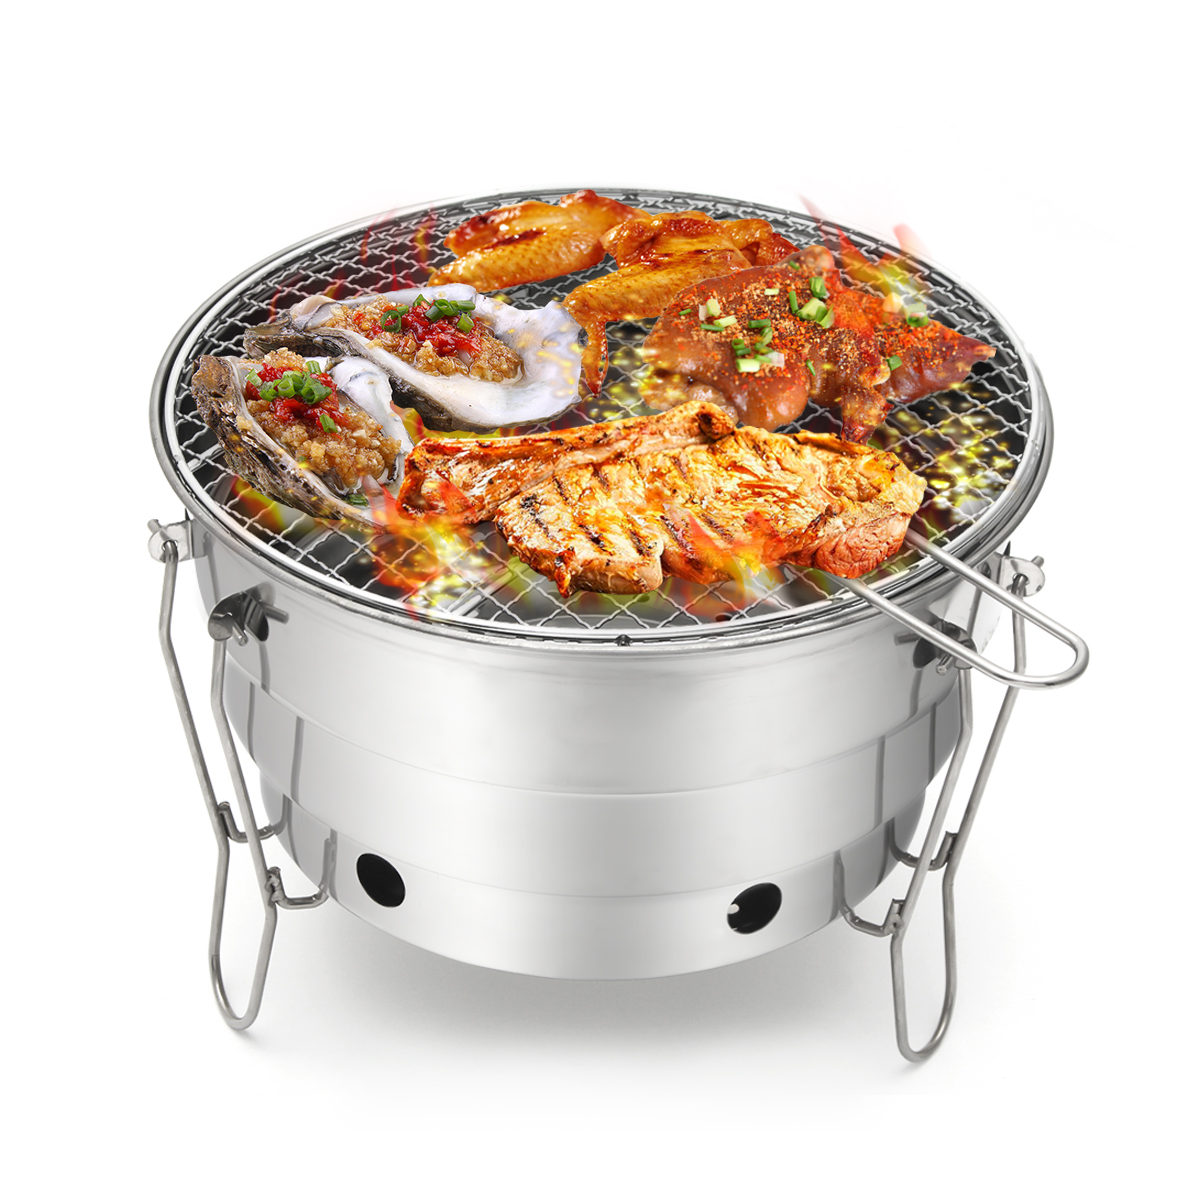 Foldable Portable Barbecue Charcoal BBQ Grill Stainless Steel Cooking Outdoor Camping Burner Patio Stove Family Party